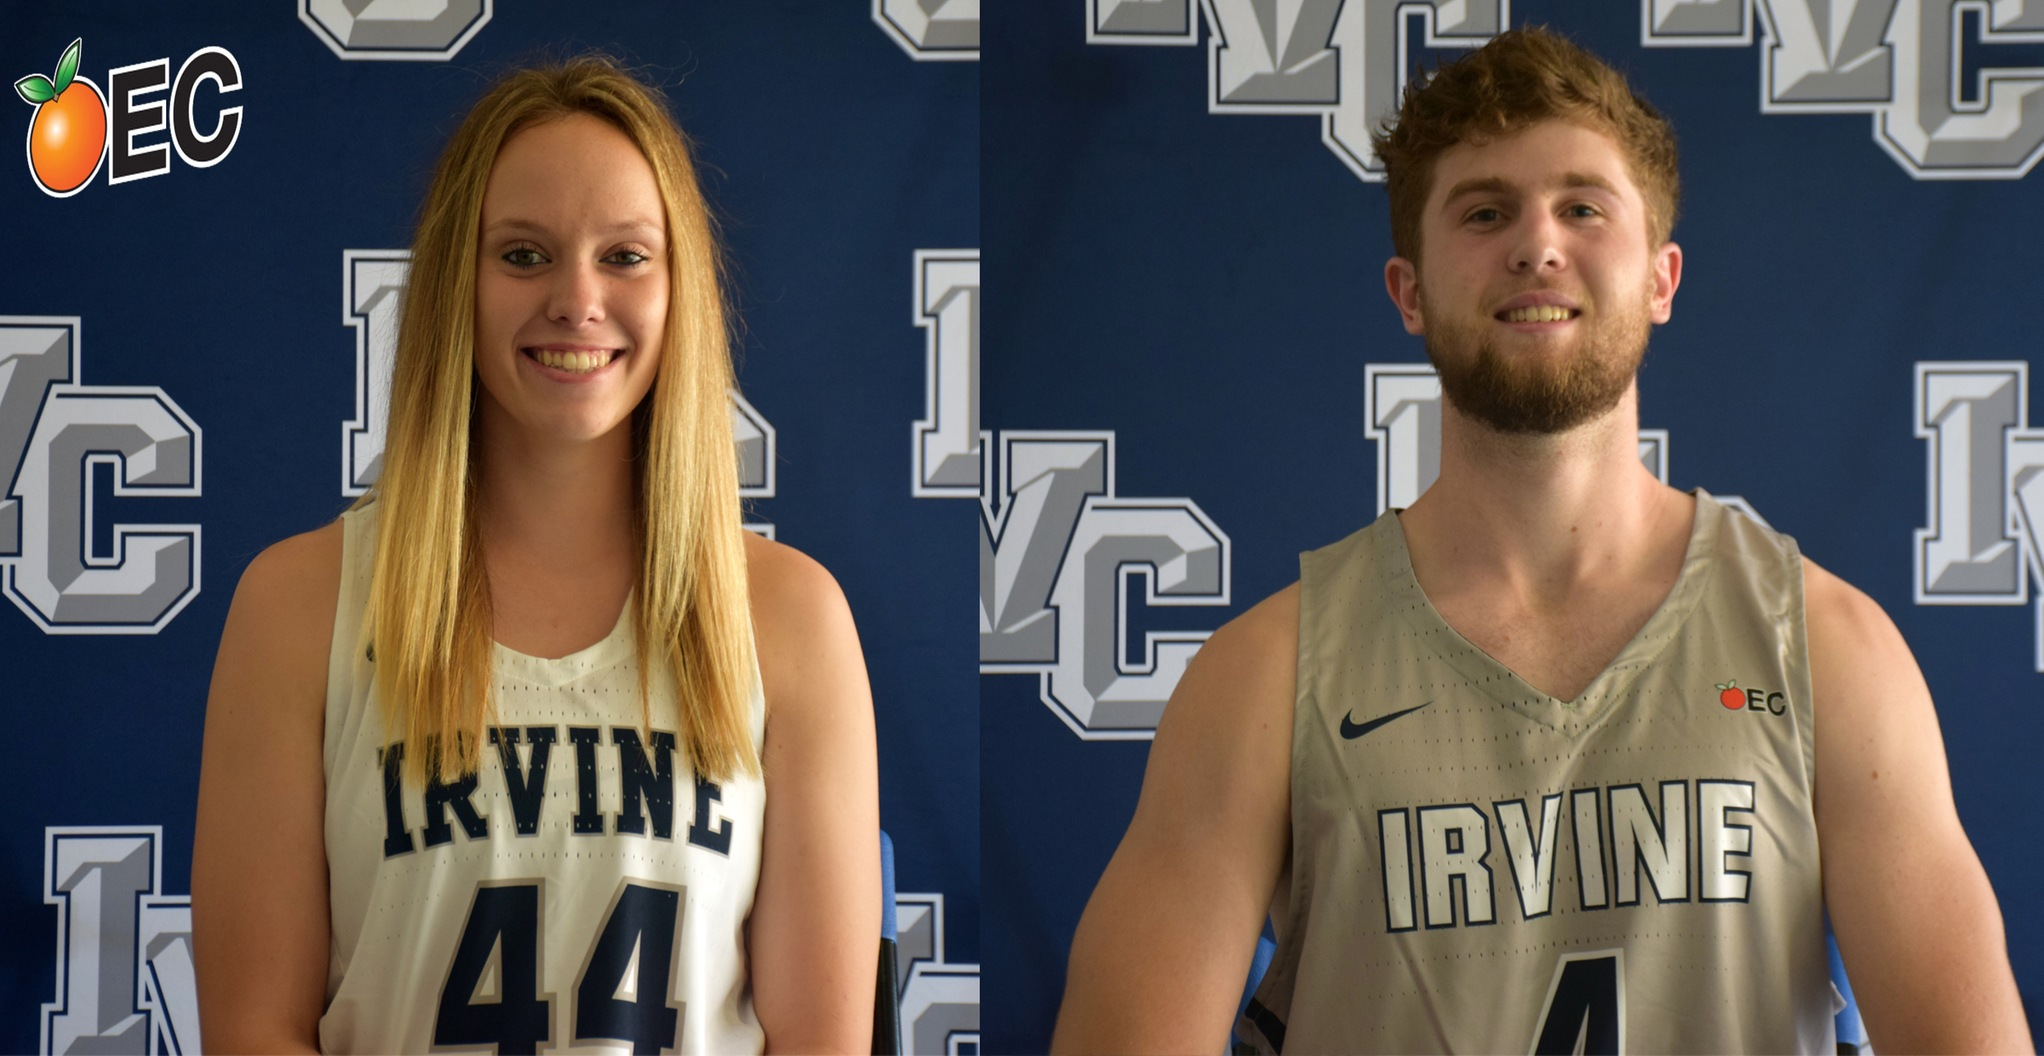 Kasey Smit, Zane Paddon earn Irvine Valley character awards